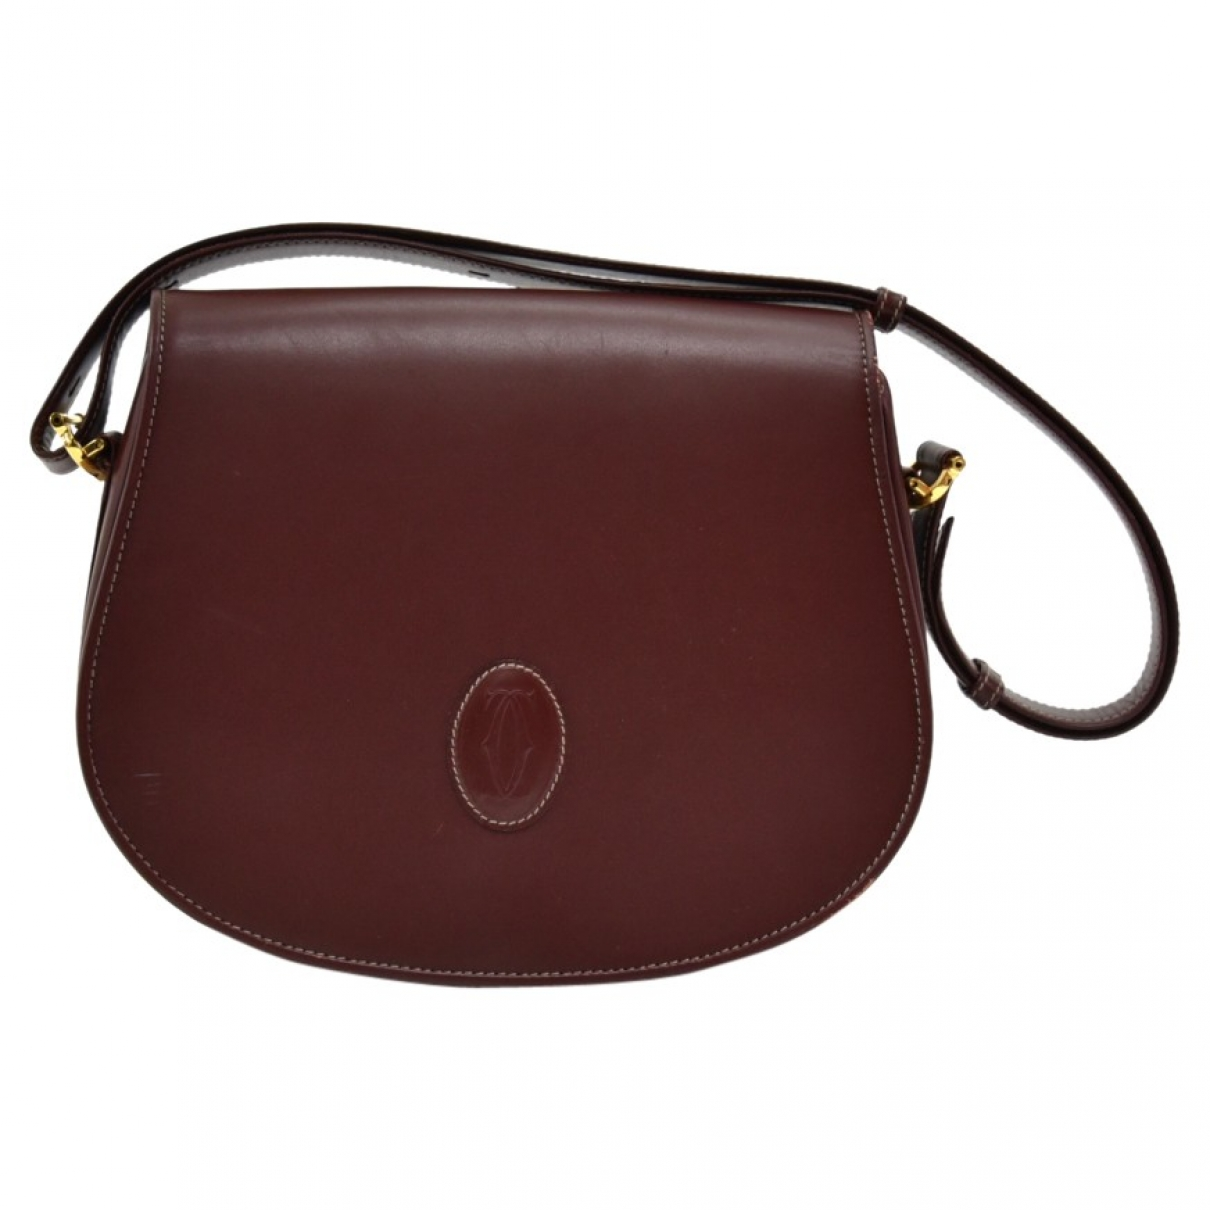 Cartier \N Burgundy Leather handbag for Women \N